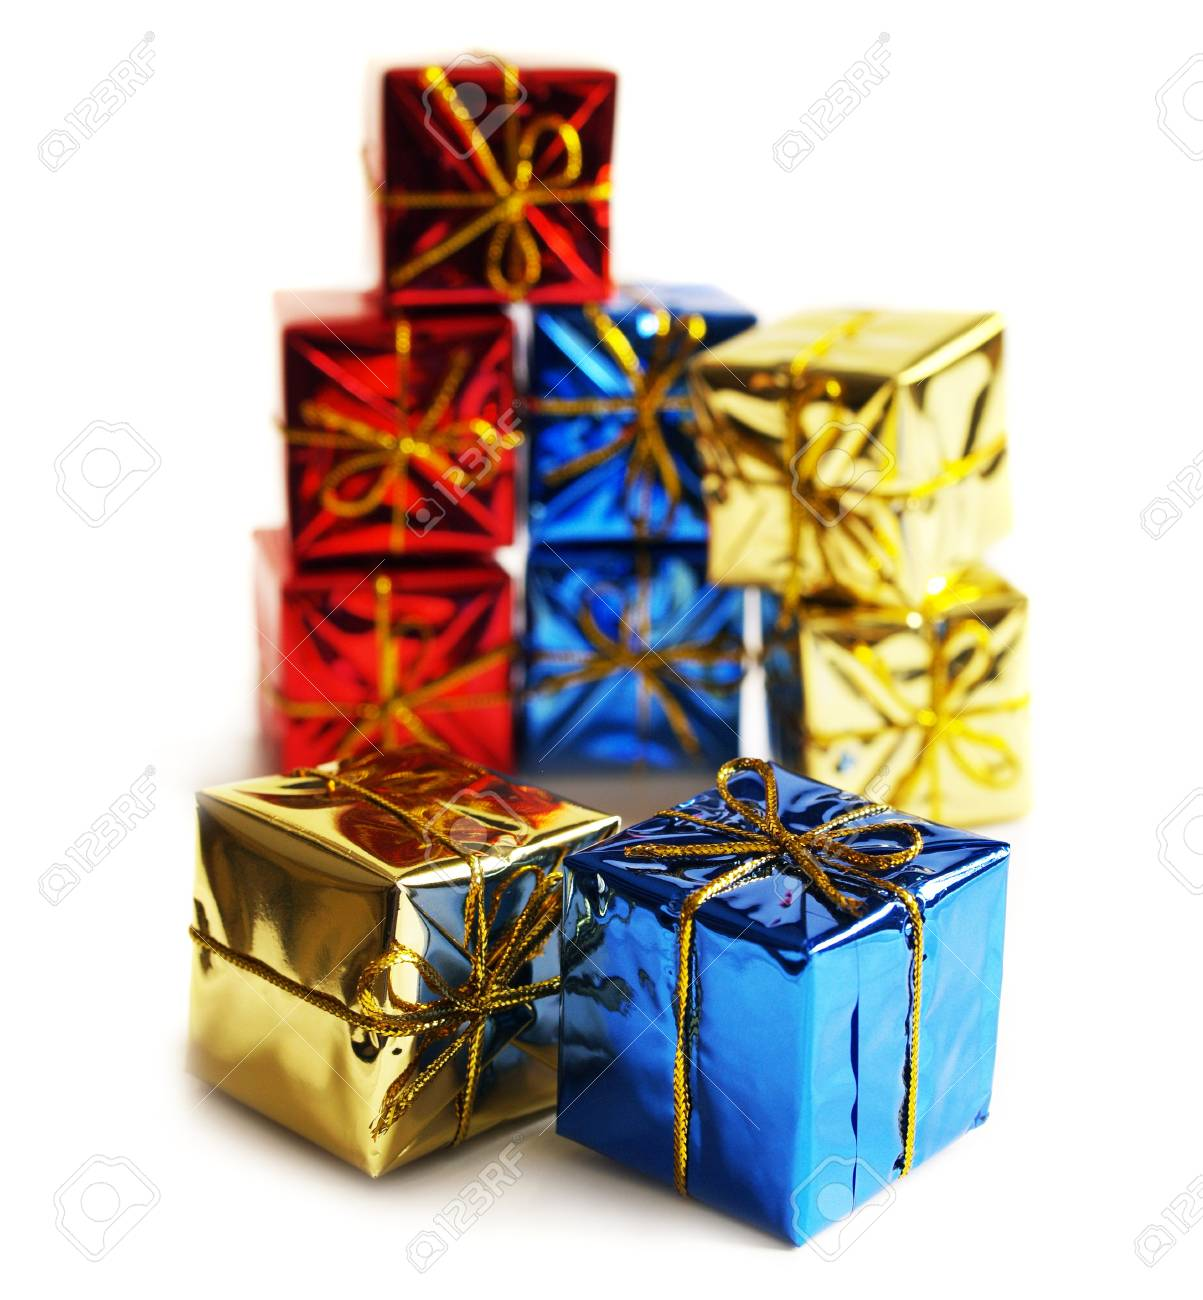 Many gifts in the boxes on a white background. Card design with presents. Stock Photo - 7378598